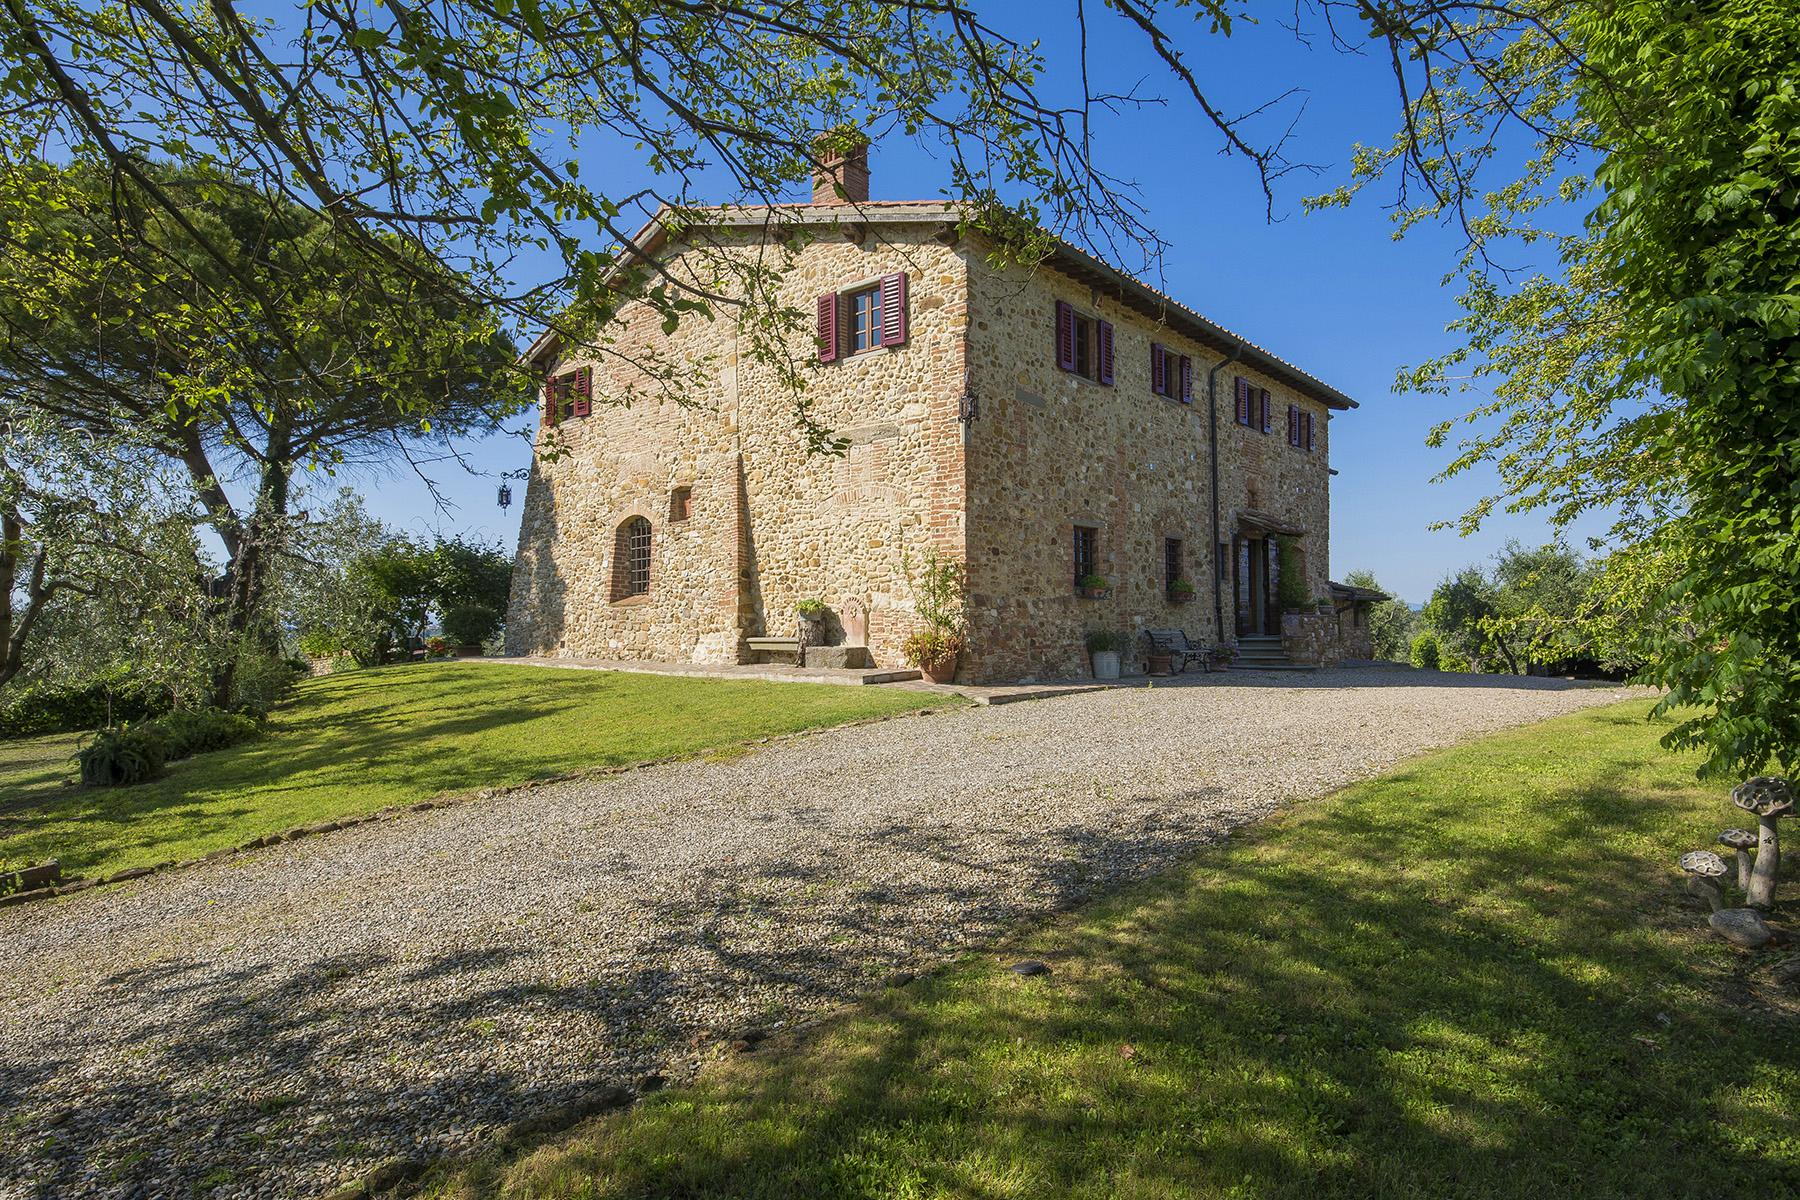 Beautiful countryhouse in the Chianti area - 1